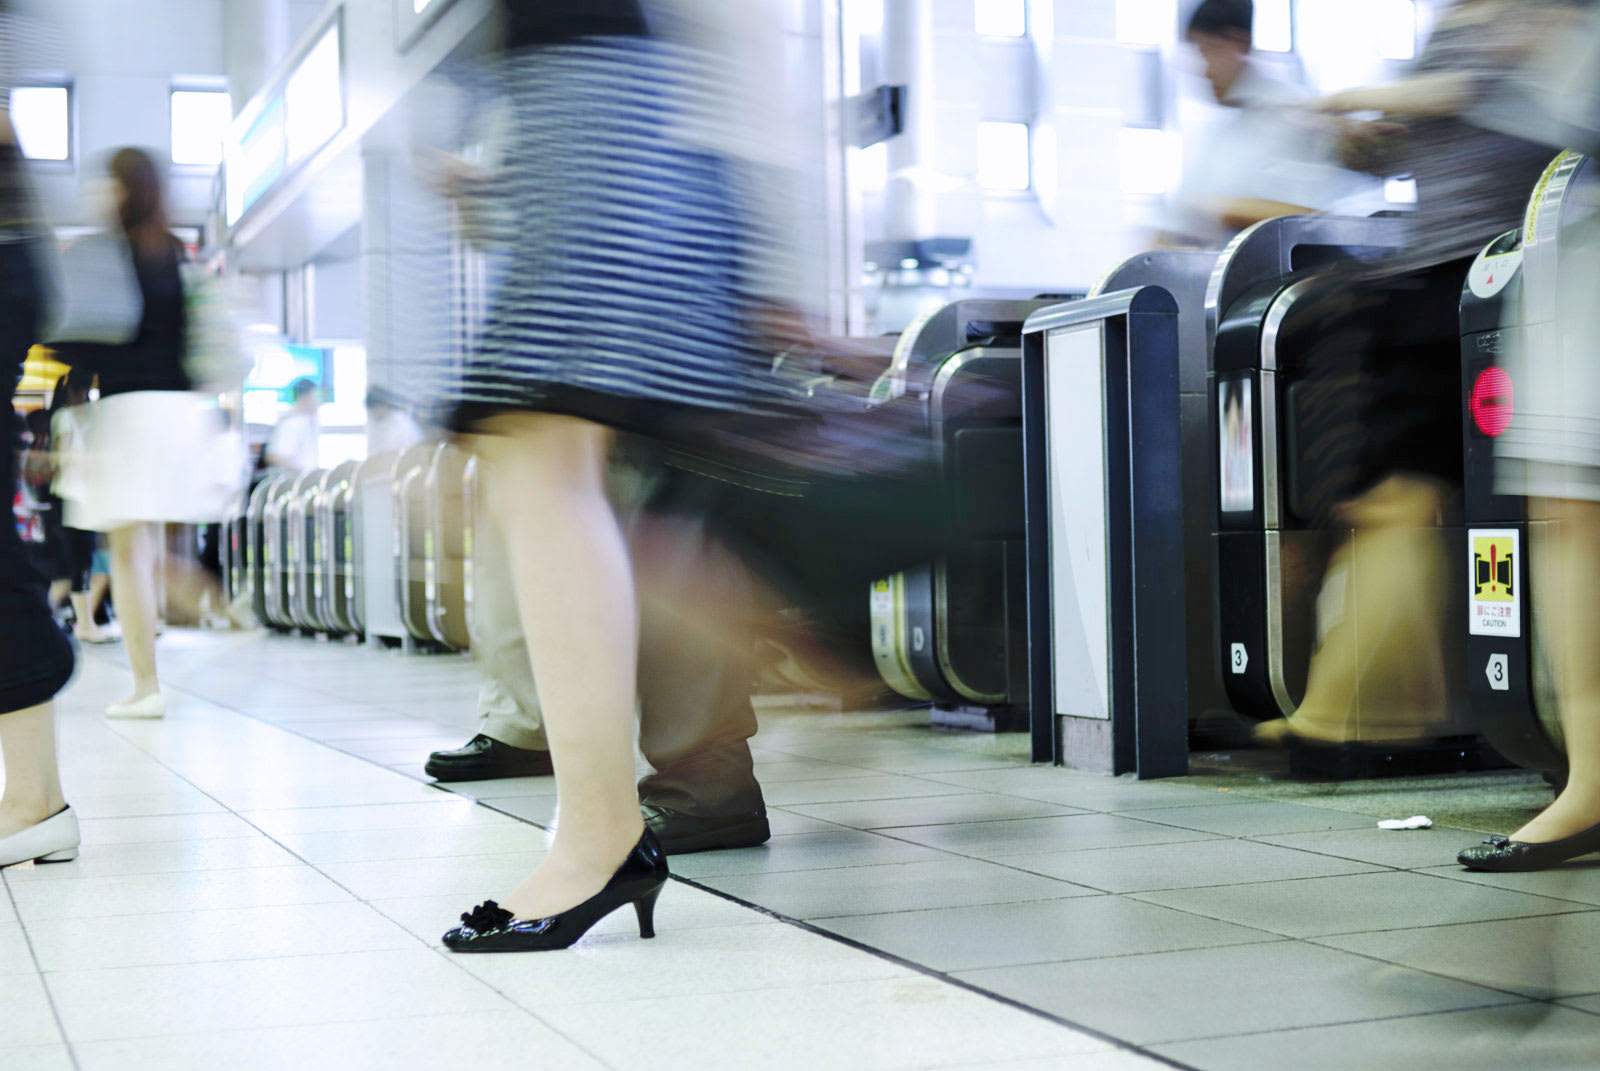 iPhone 7 could have tap-to-pay feature for Japan's subways